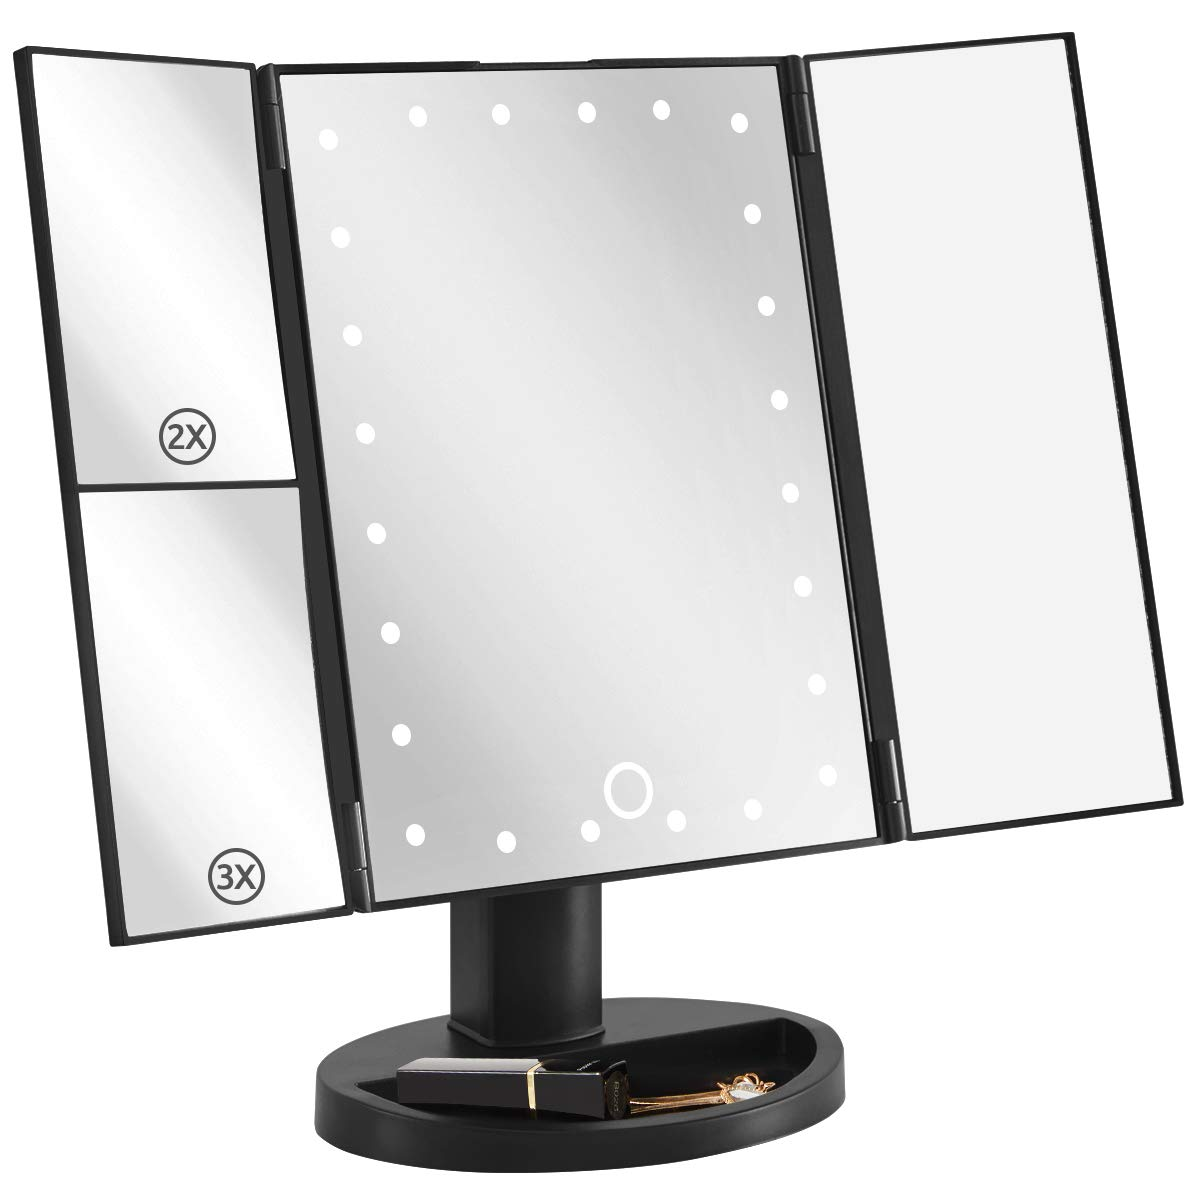 YOUDENOVA Makeup Vanity Mirror with Lights, Led Lighted Makeup Mirror with 3X 2X Magnifying and Dual Power Supply Touch Screen Switch, 180 Degree Rotation, Portable Fold Cosmetic Mirror